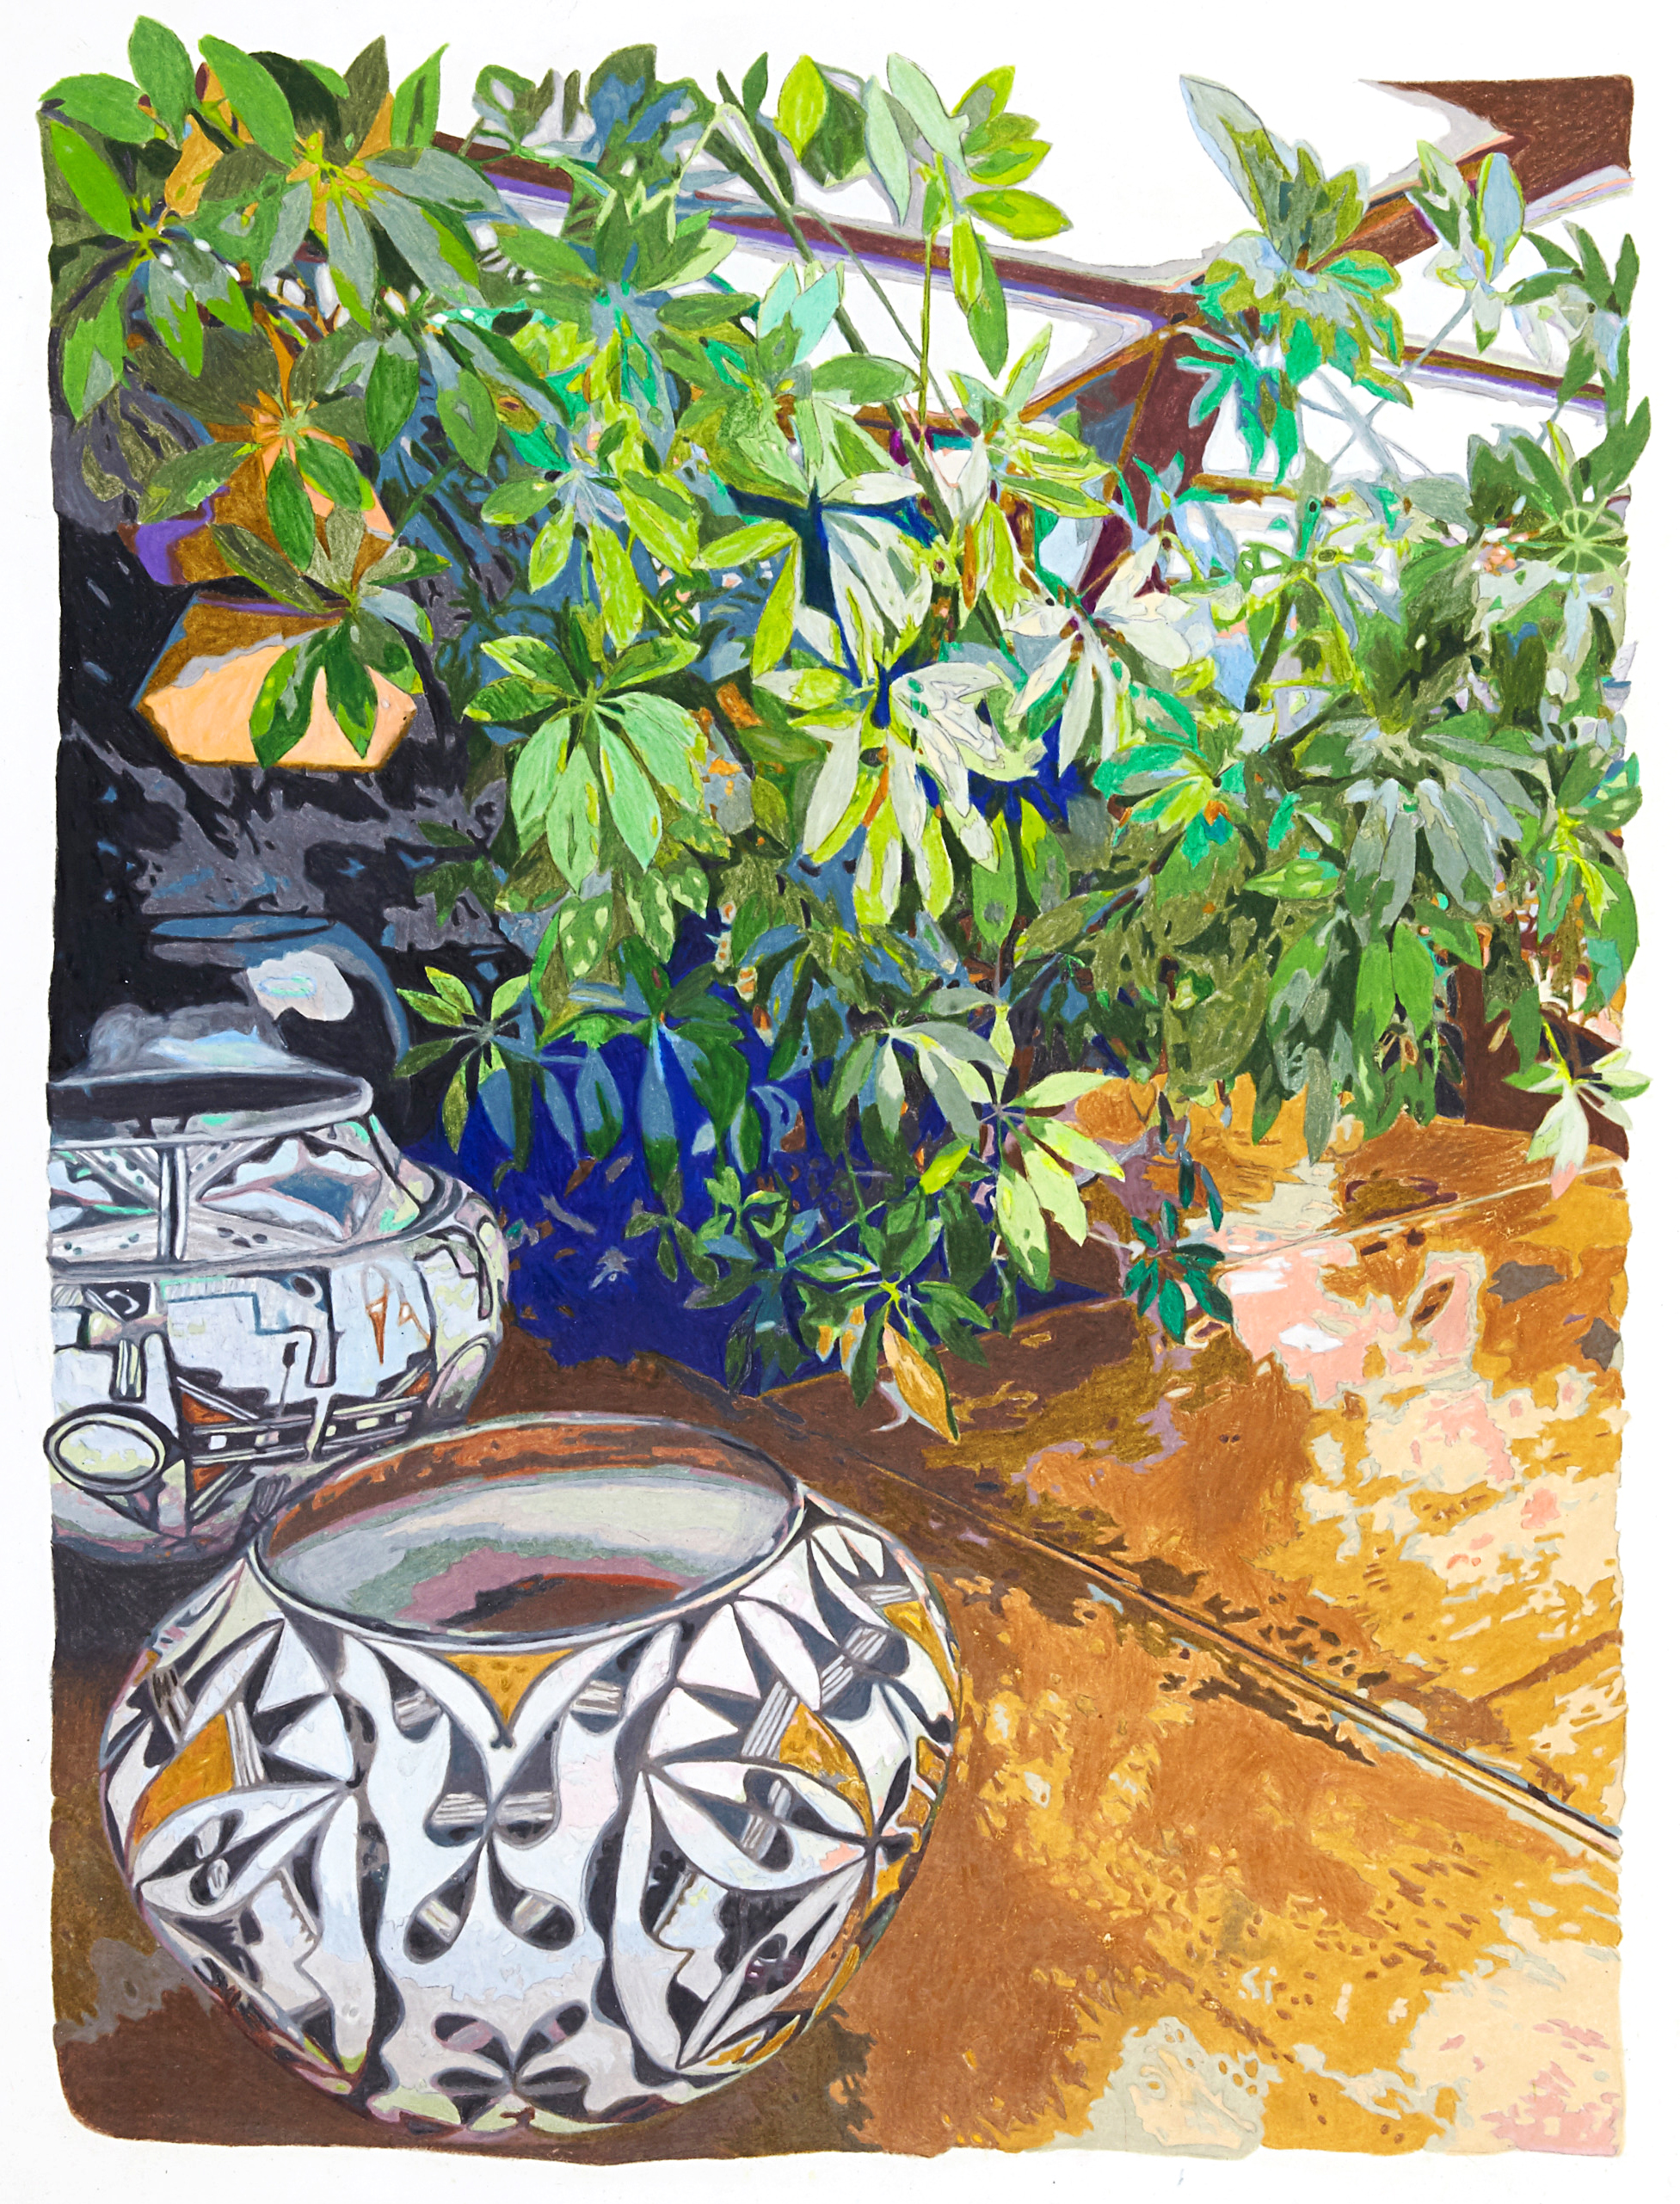 Pots and plants, Taliesin West , colored pencil on paper, 24 x 19 inches, 2019.  Photography by    Theo Coulombe